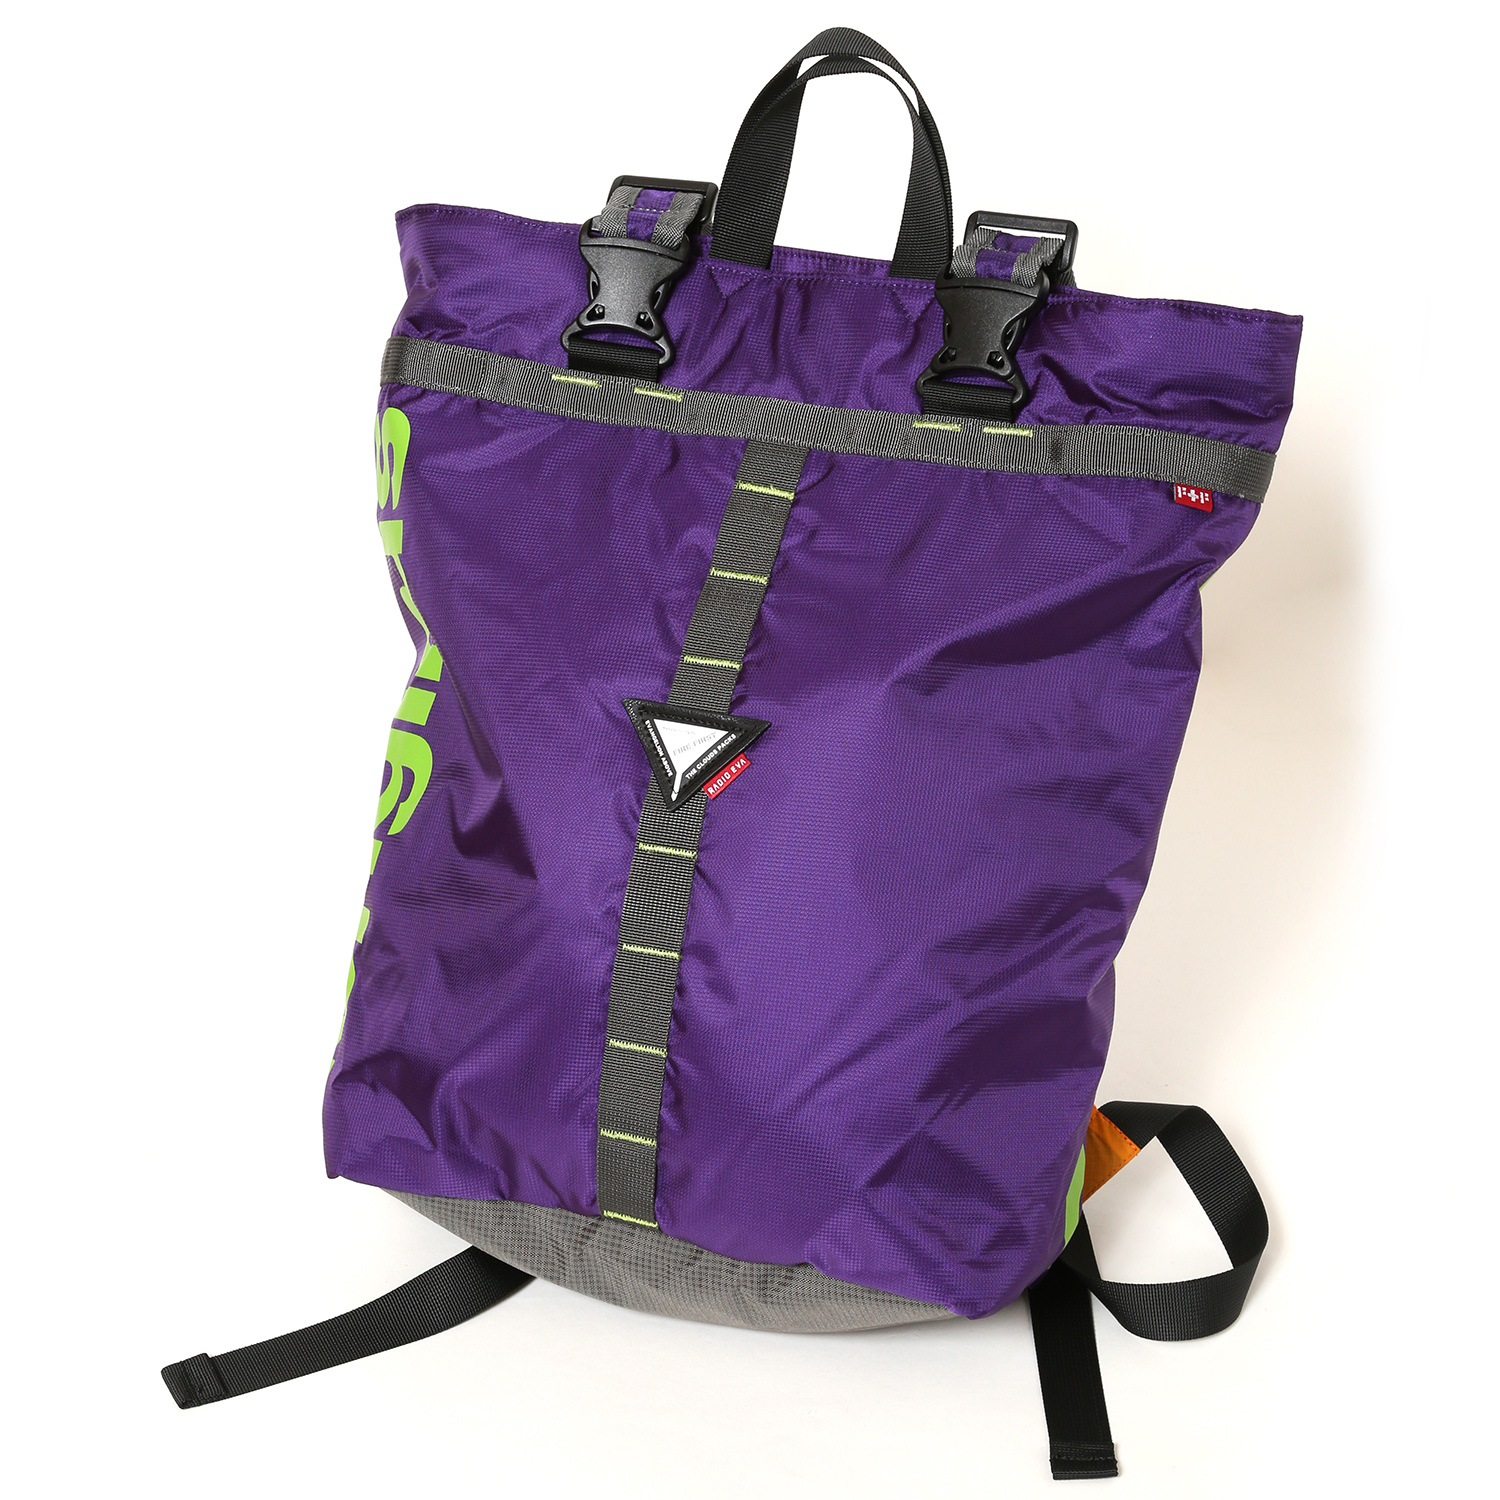 EVANGELION ABOVE AIR RUCK SACK by FIRE FIRST (EVA-13 MODEL)